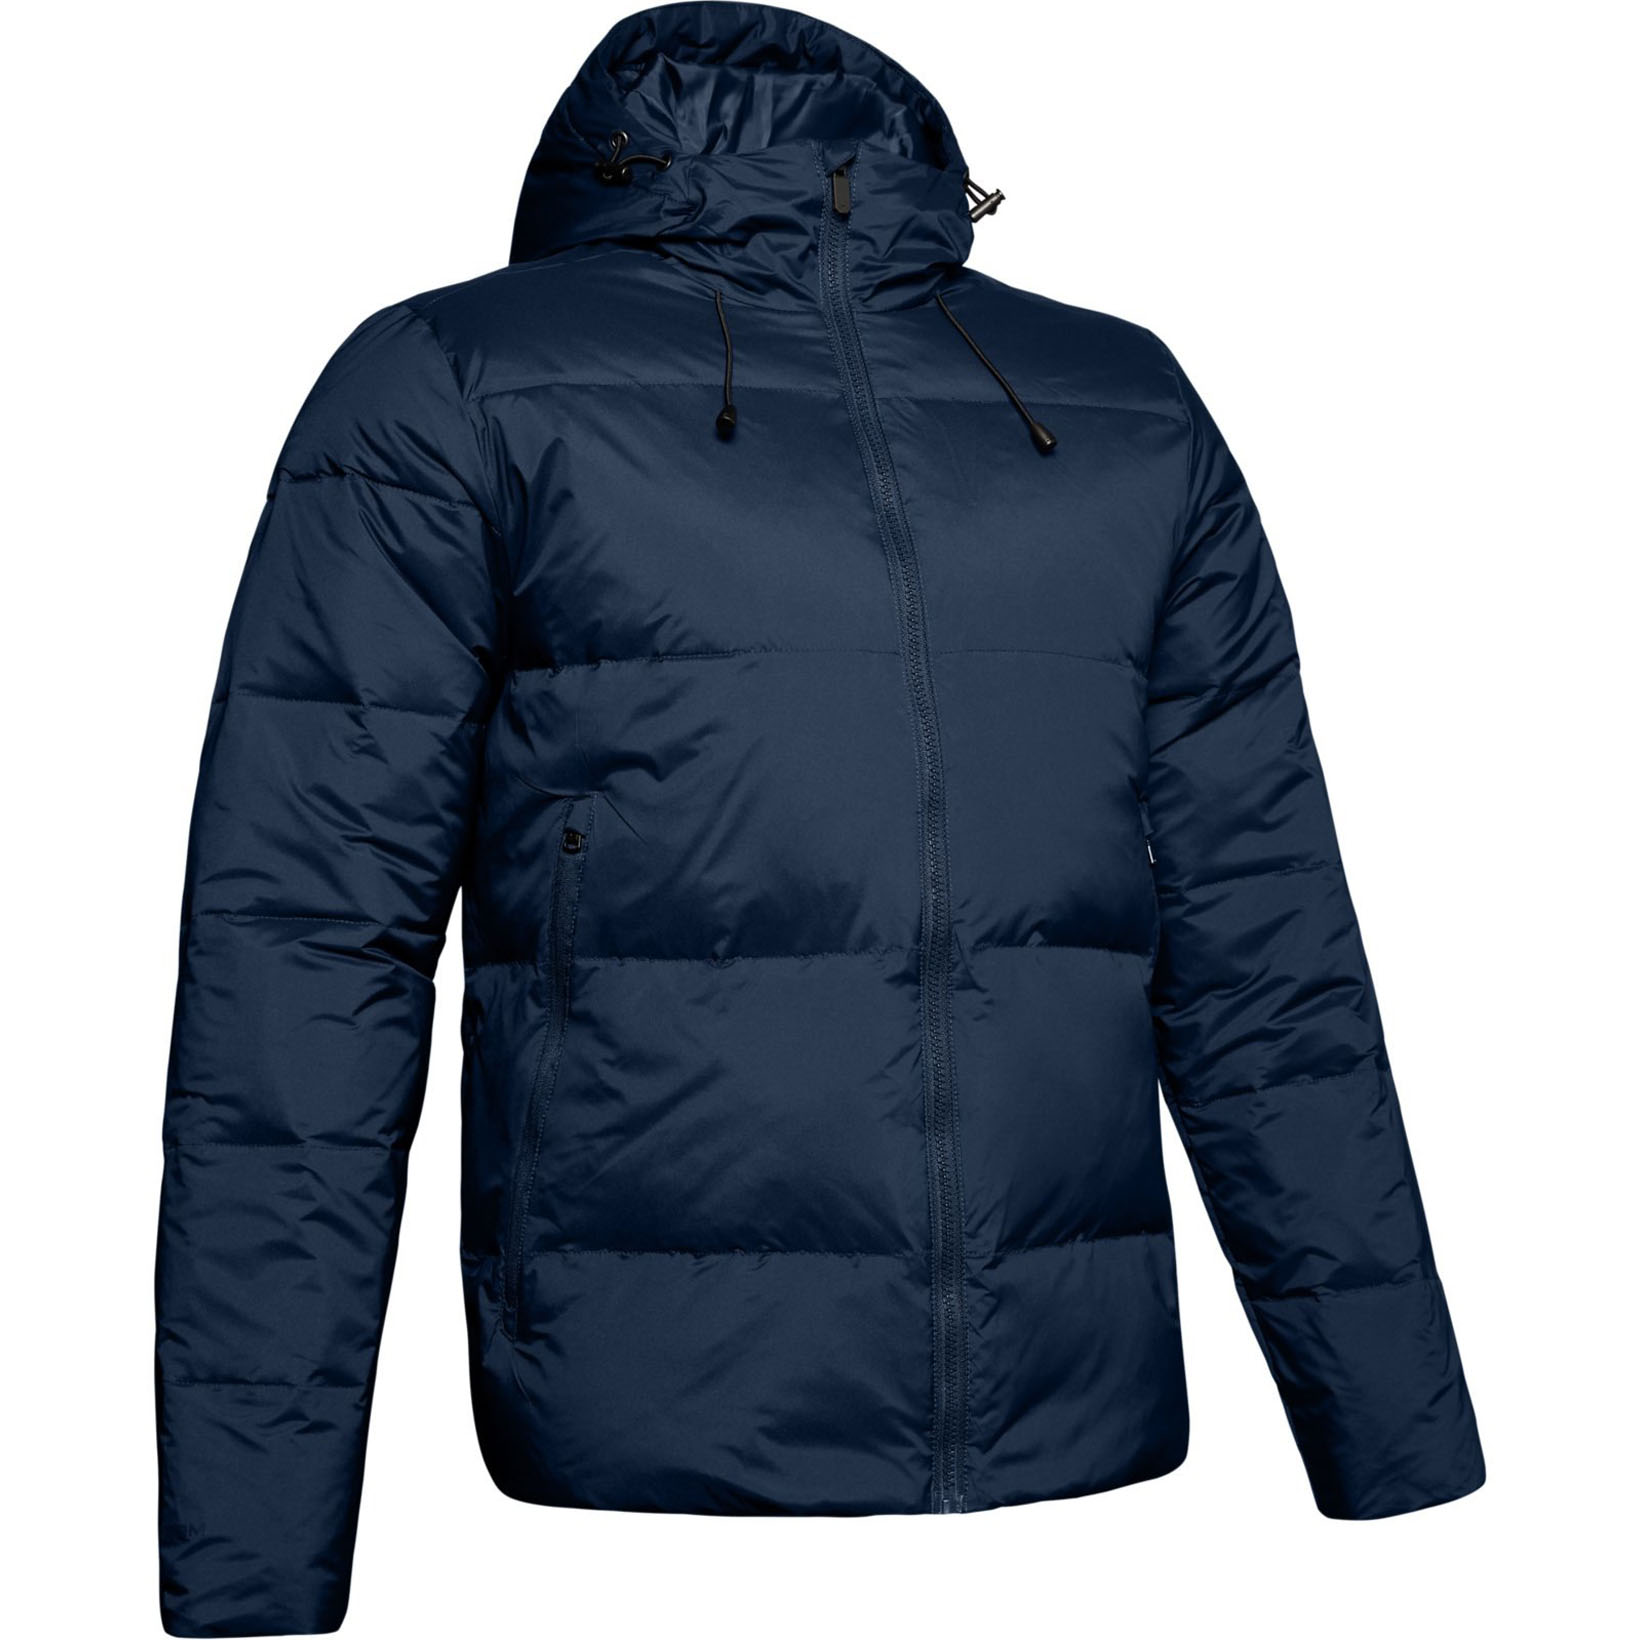 Пуховик Down 600 Fill Power Hooded Jacket Under Armour Синий фото 3